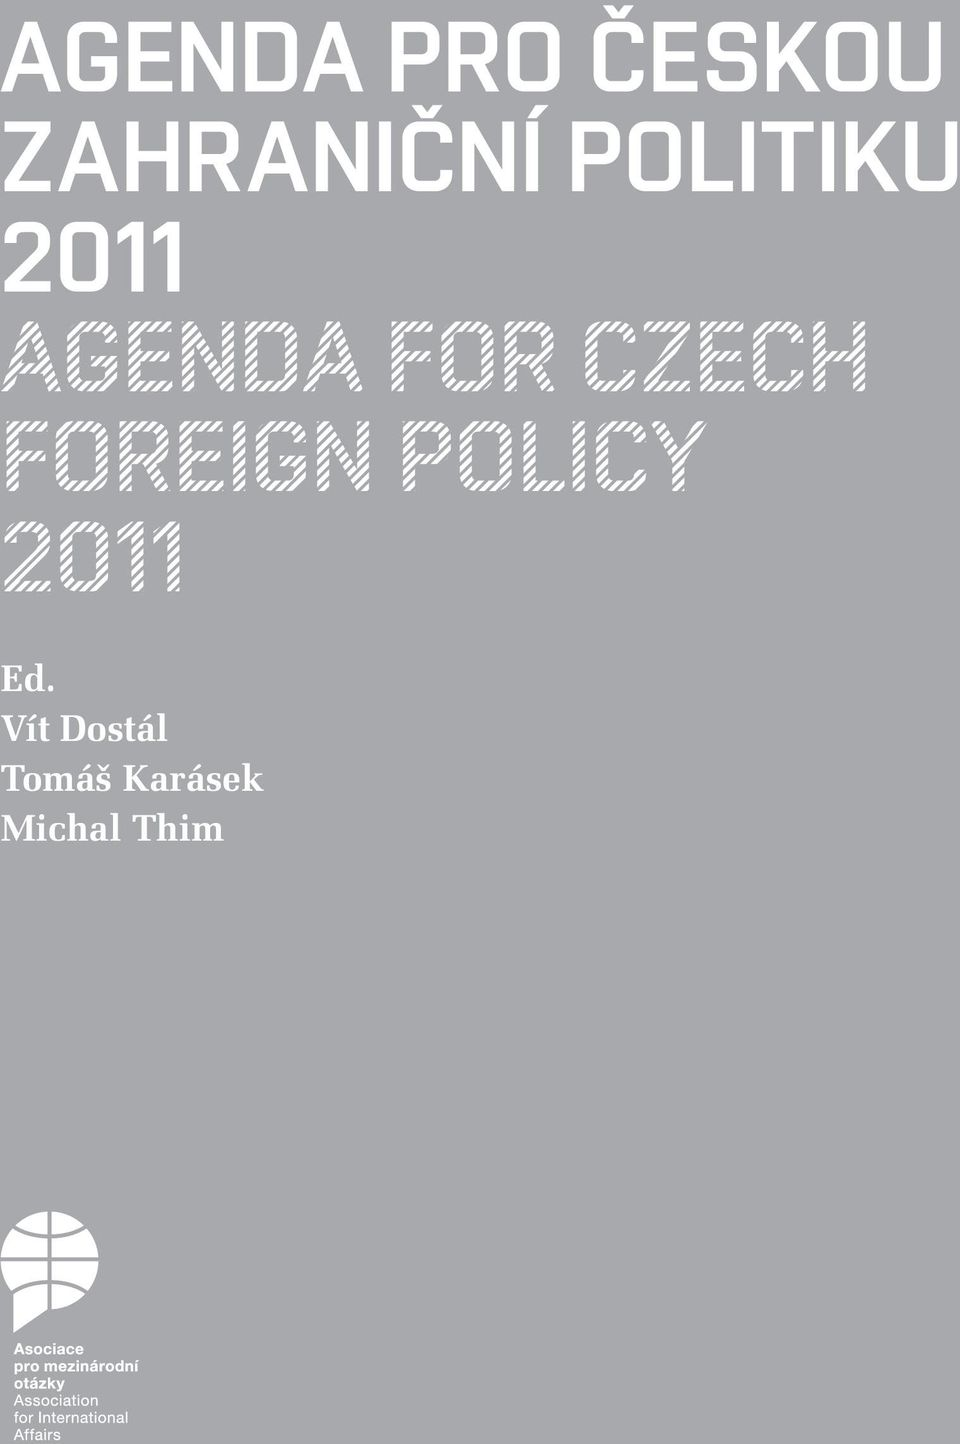 CZECH FOREIGN POLICY 2011 Ed.